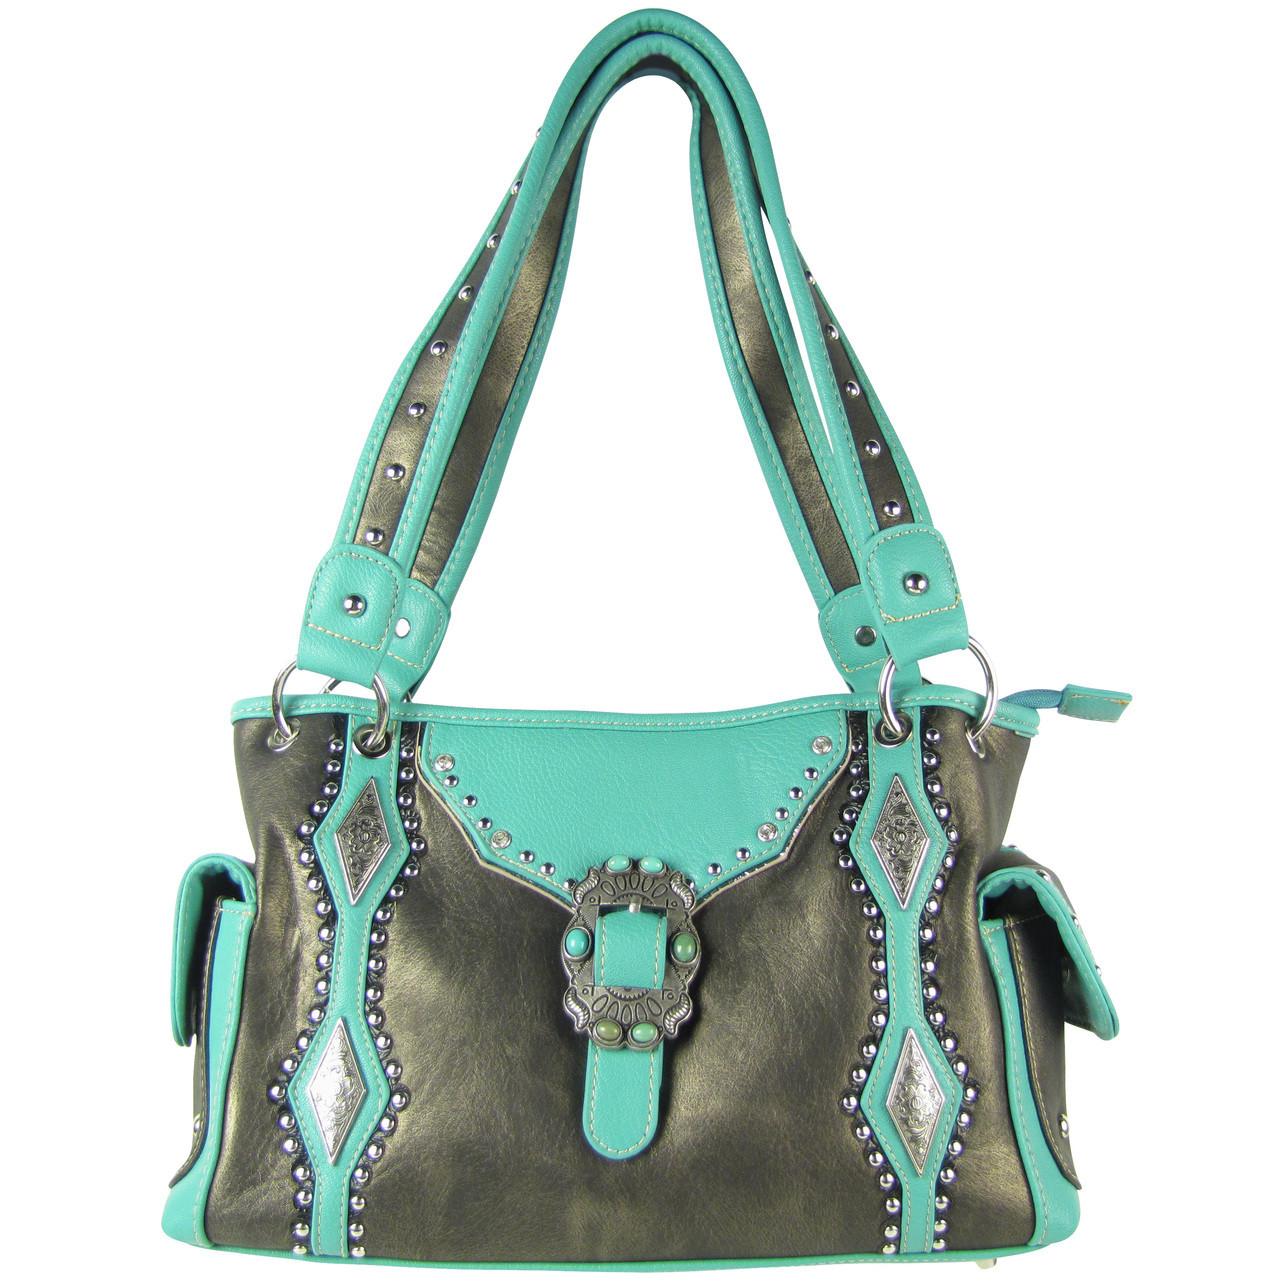 GRAY STITCHED BUCKLE DESIGN LOOK SHOULDER HANDBAG GRAY STITCHED BUCKLE DESIGN LOOK SHOULDER HANDBAG HB1-CHF1117GRY